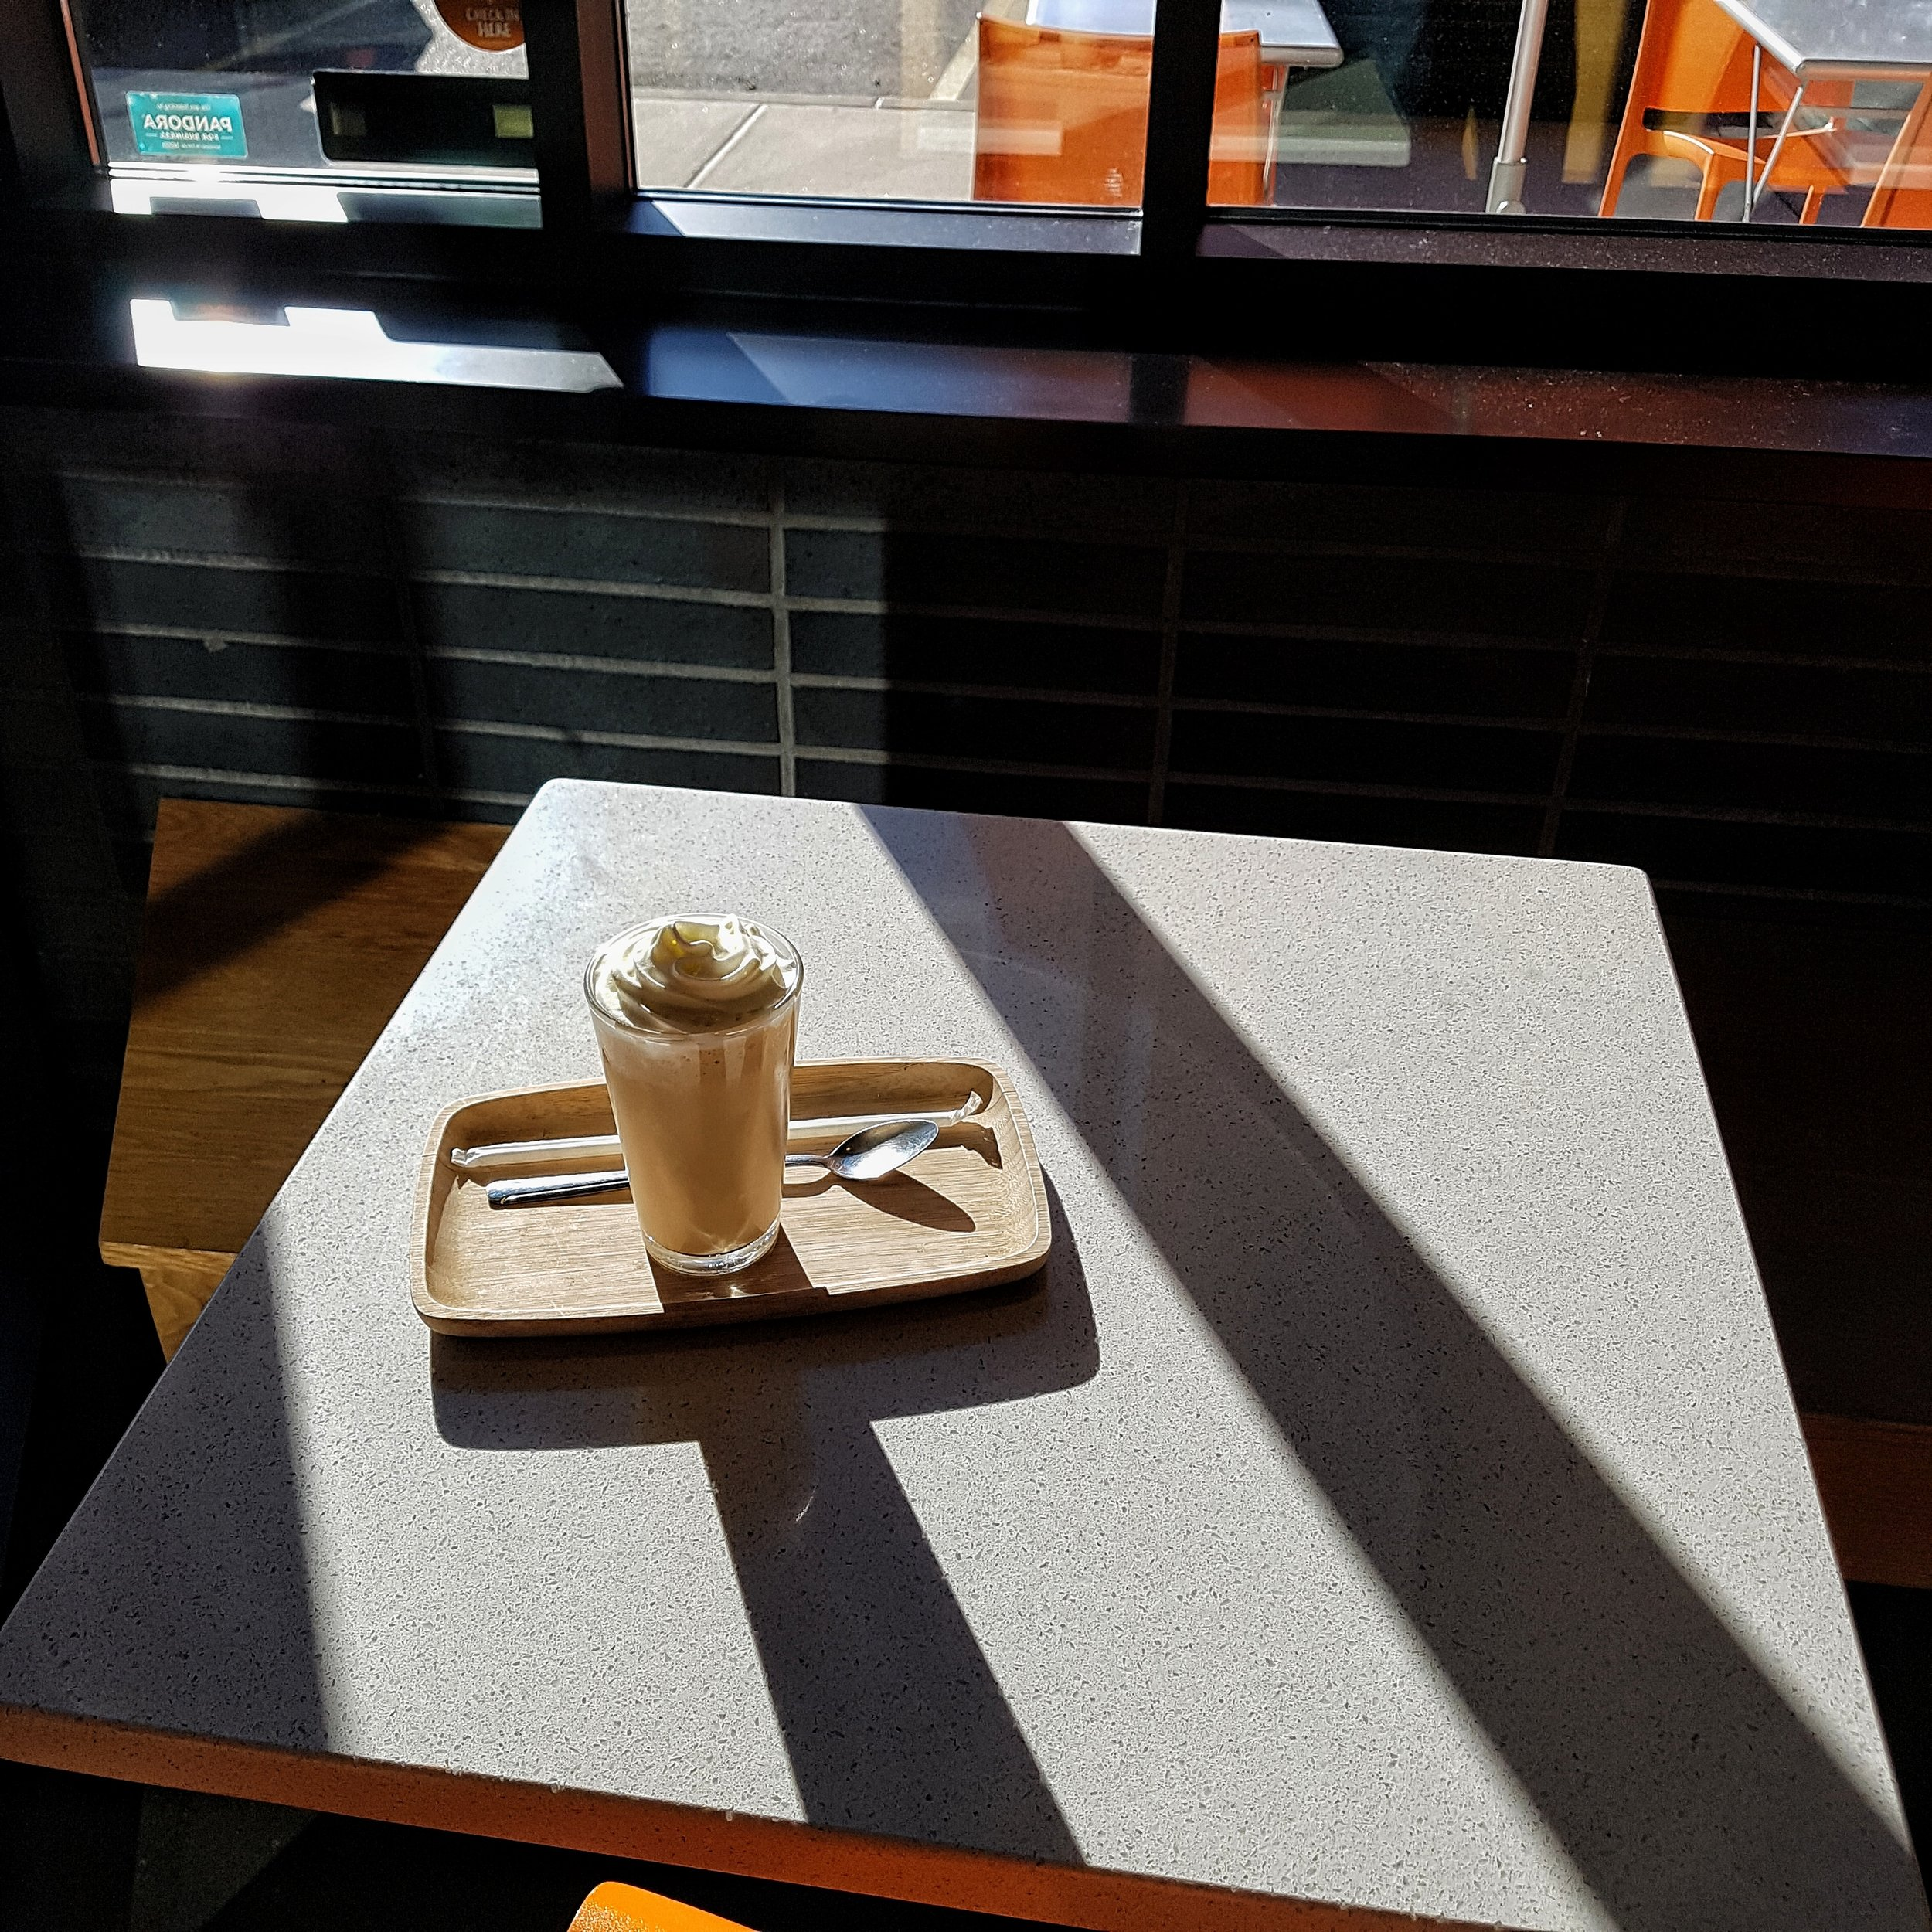 A milkshake sits on a table in the sun